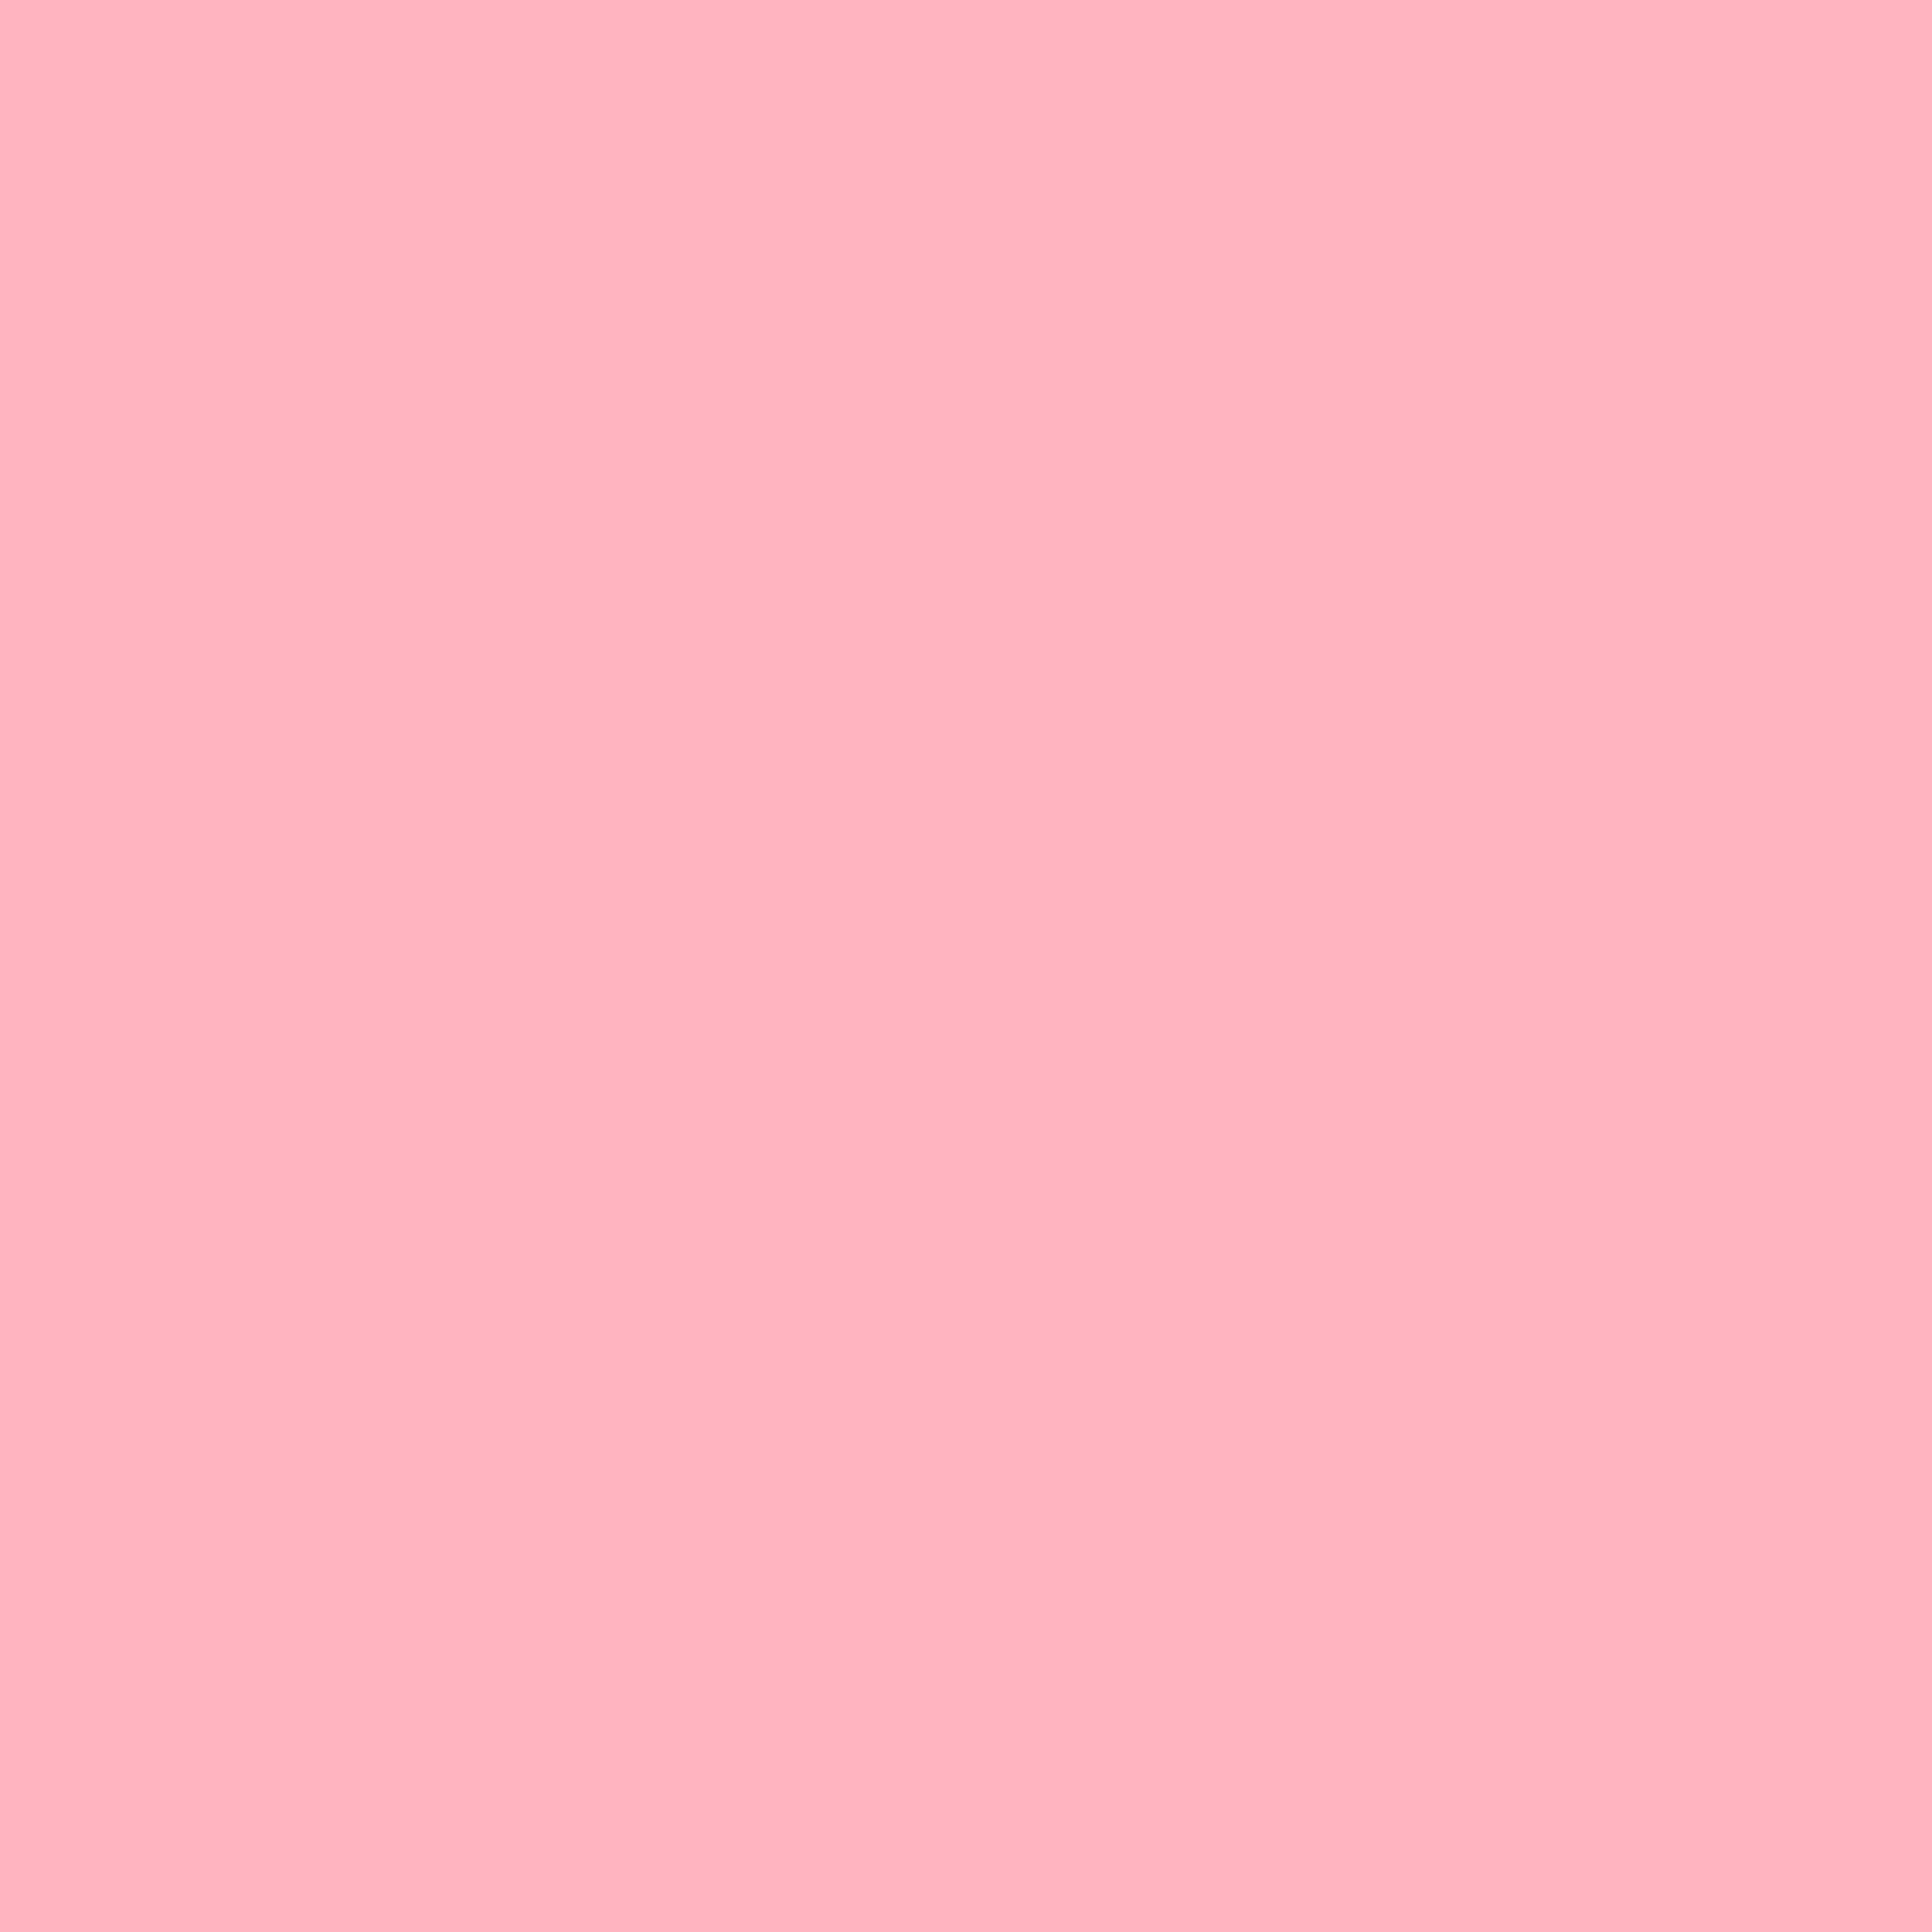 Backgrounds Style Powerpoint Color Pink